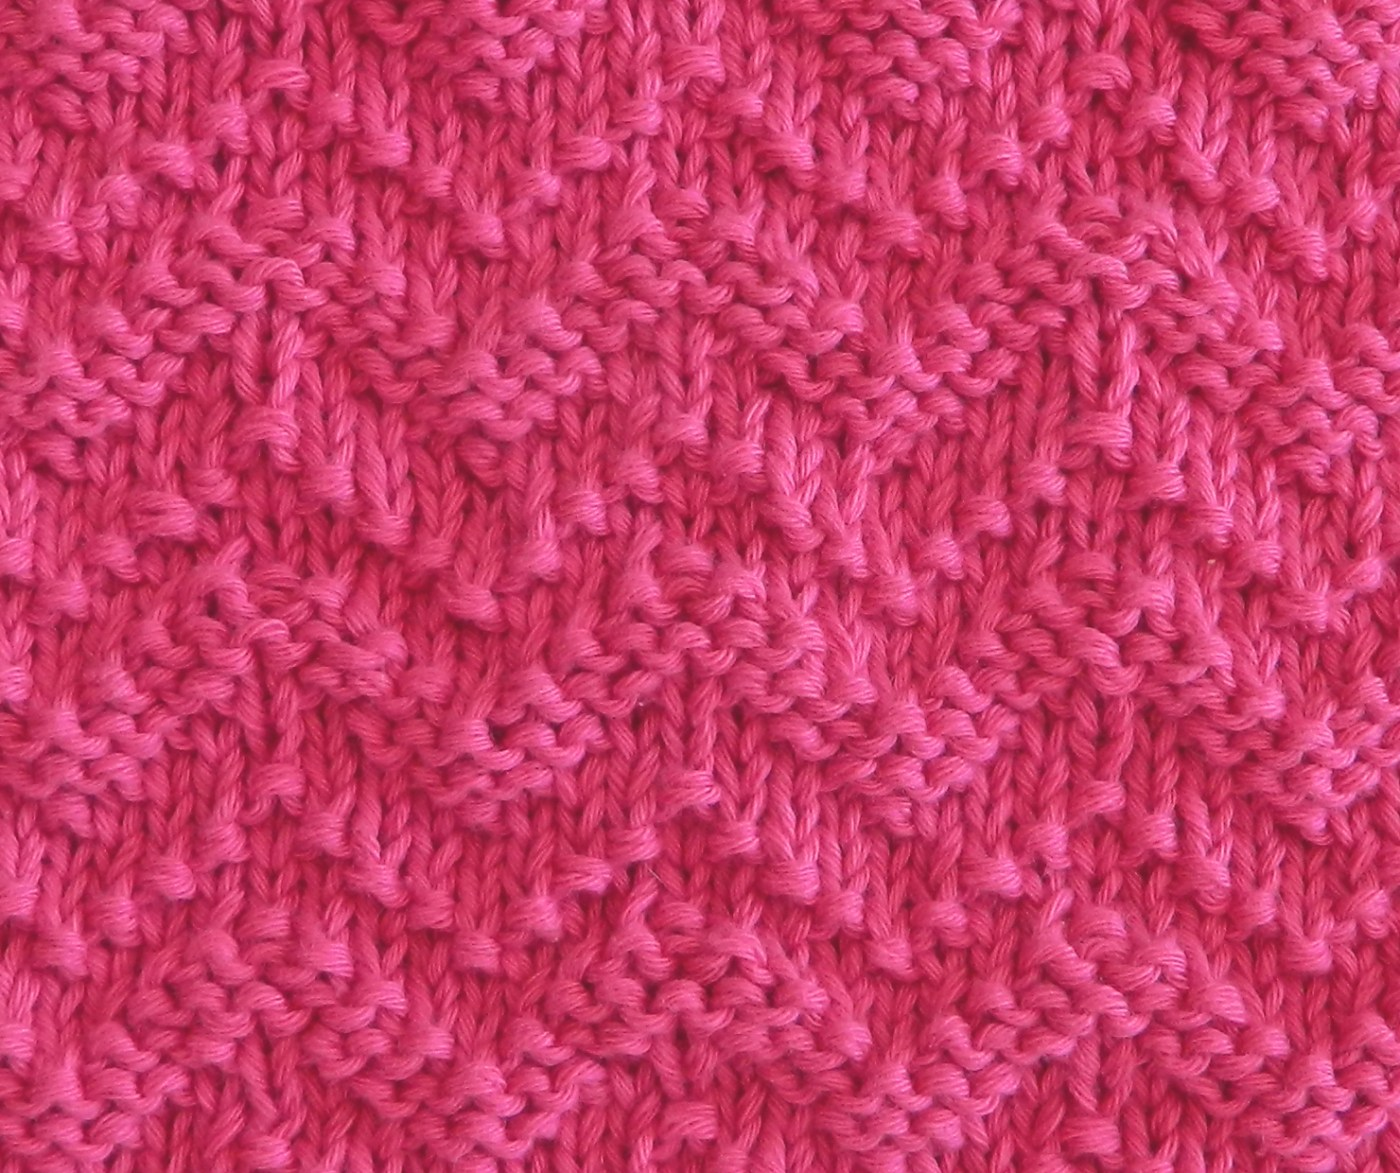 CHEVRON knitting pattern CHEVRON stitch pattern ohlalana